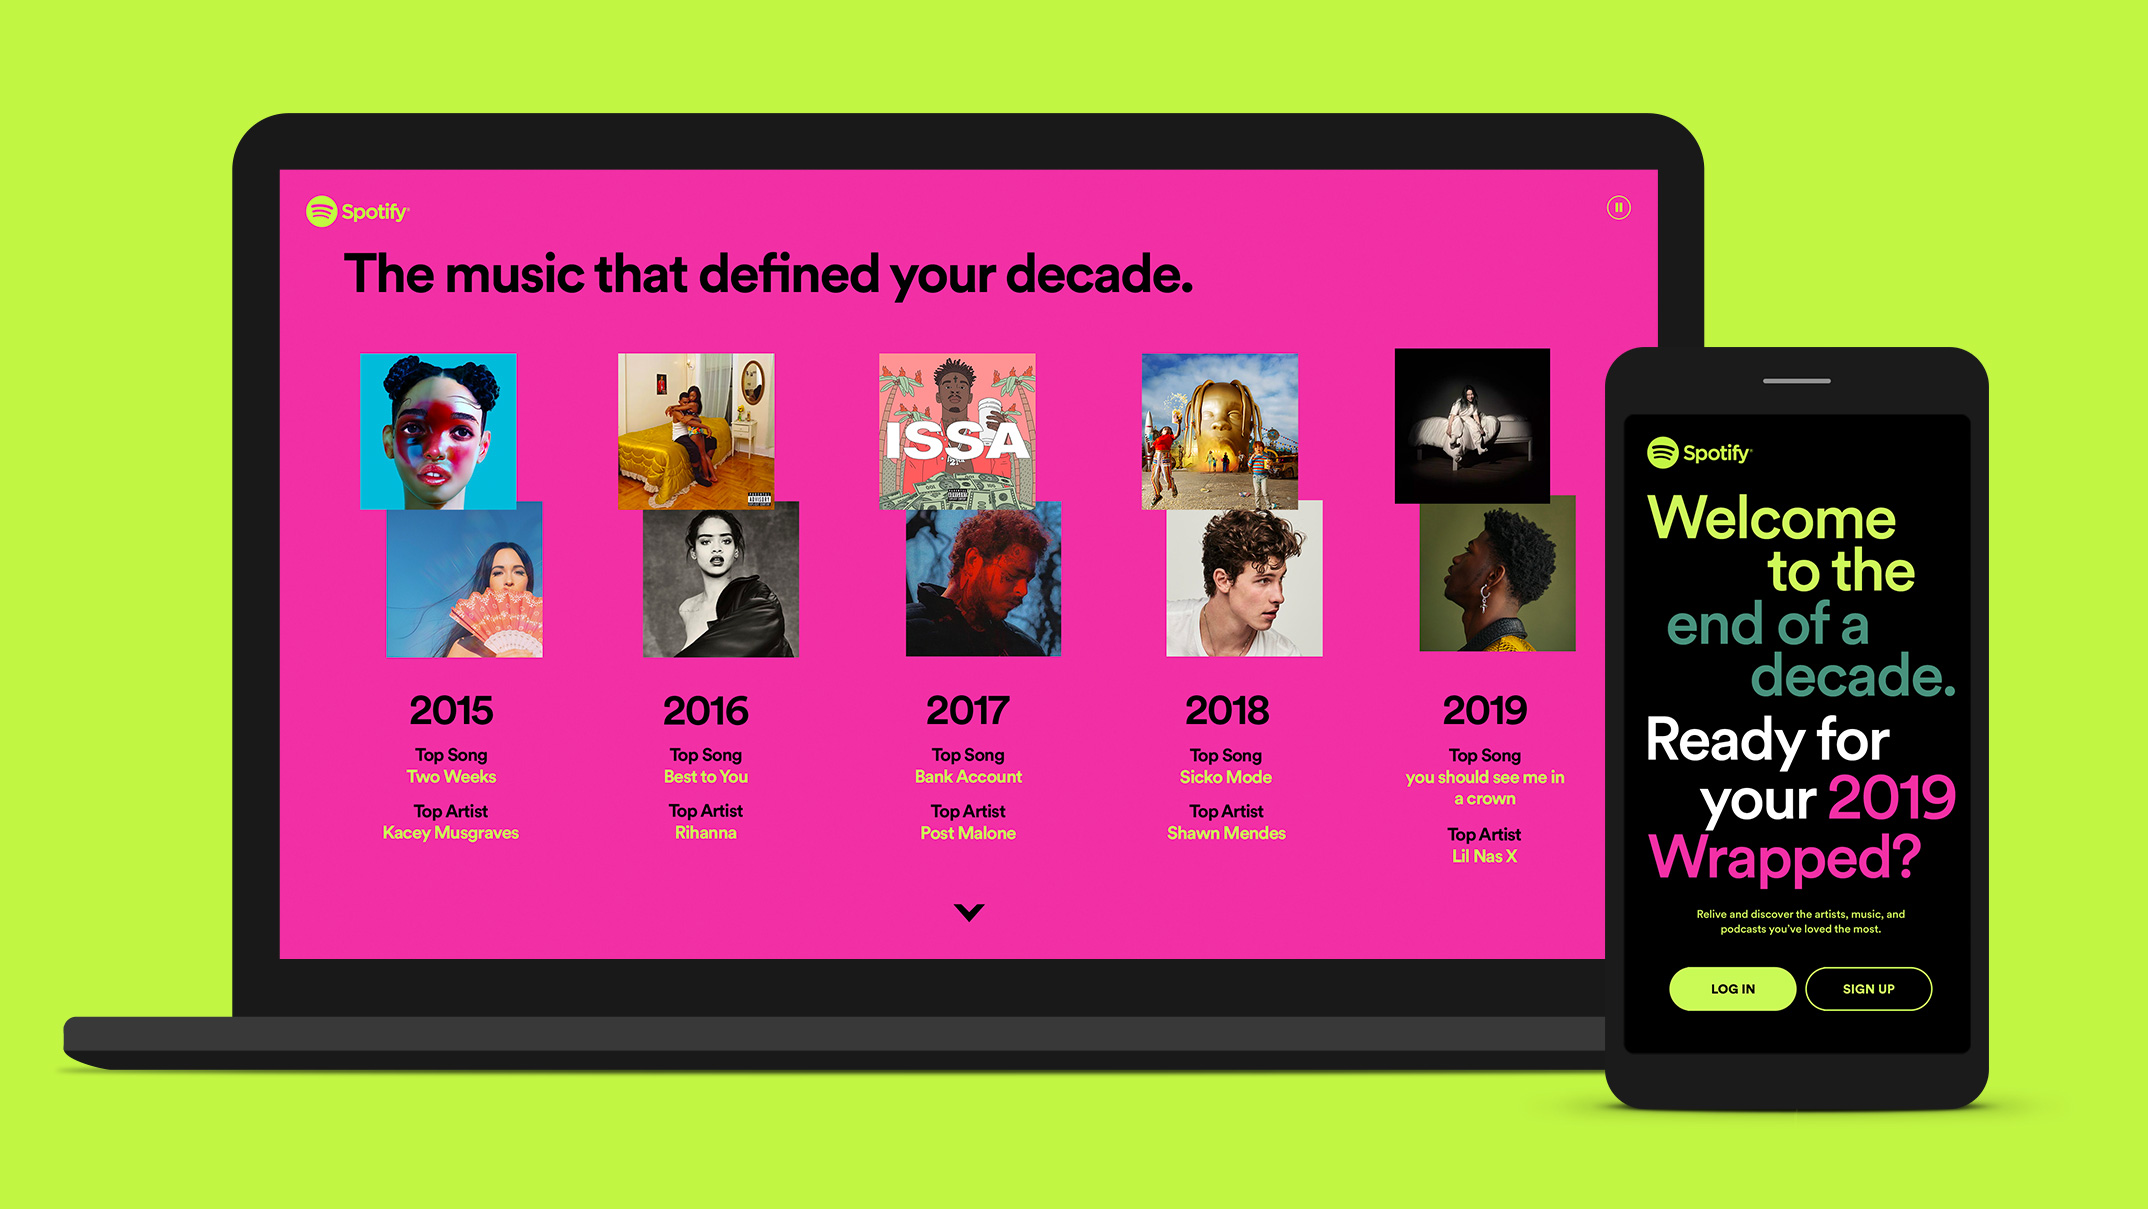 Spotify Wrapped Consumer PR 03 Decade Hmpg